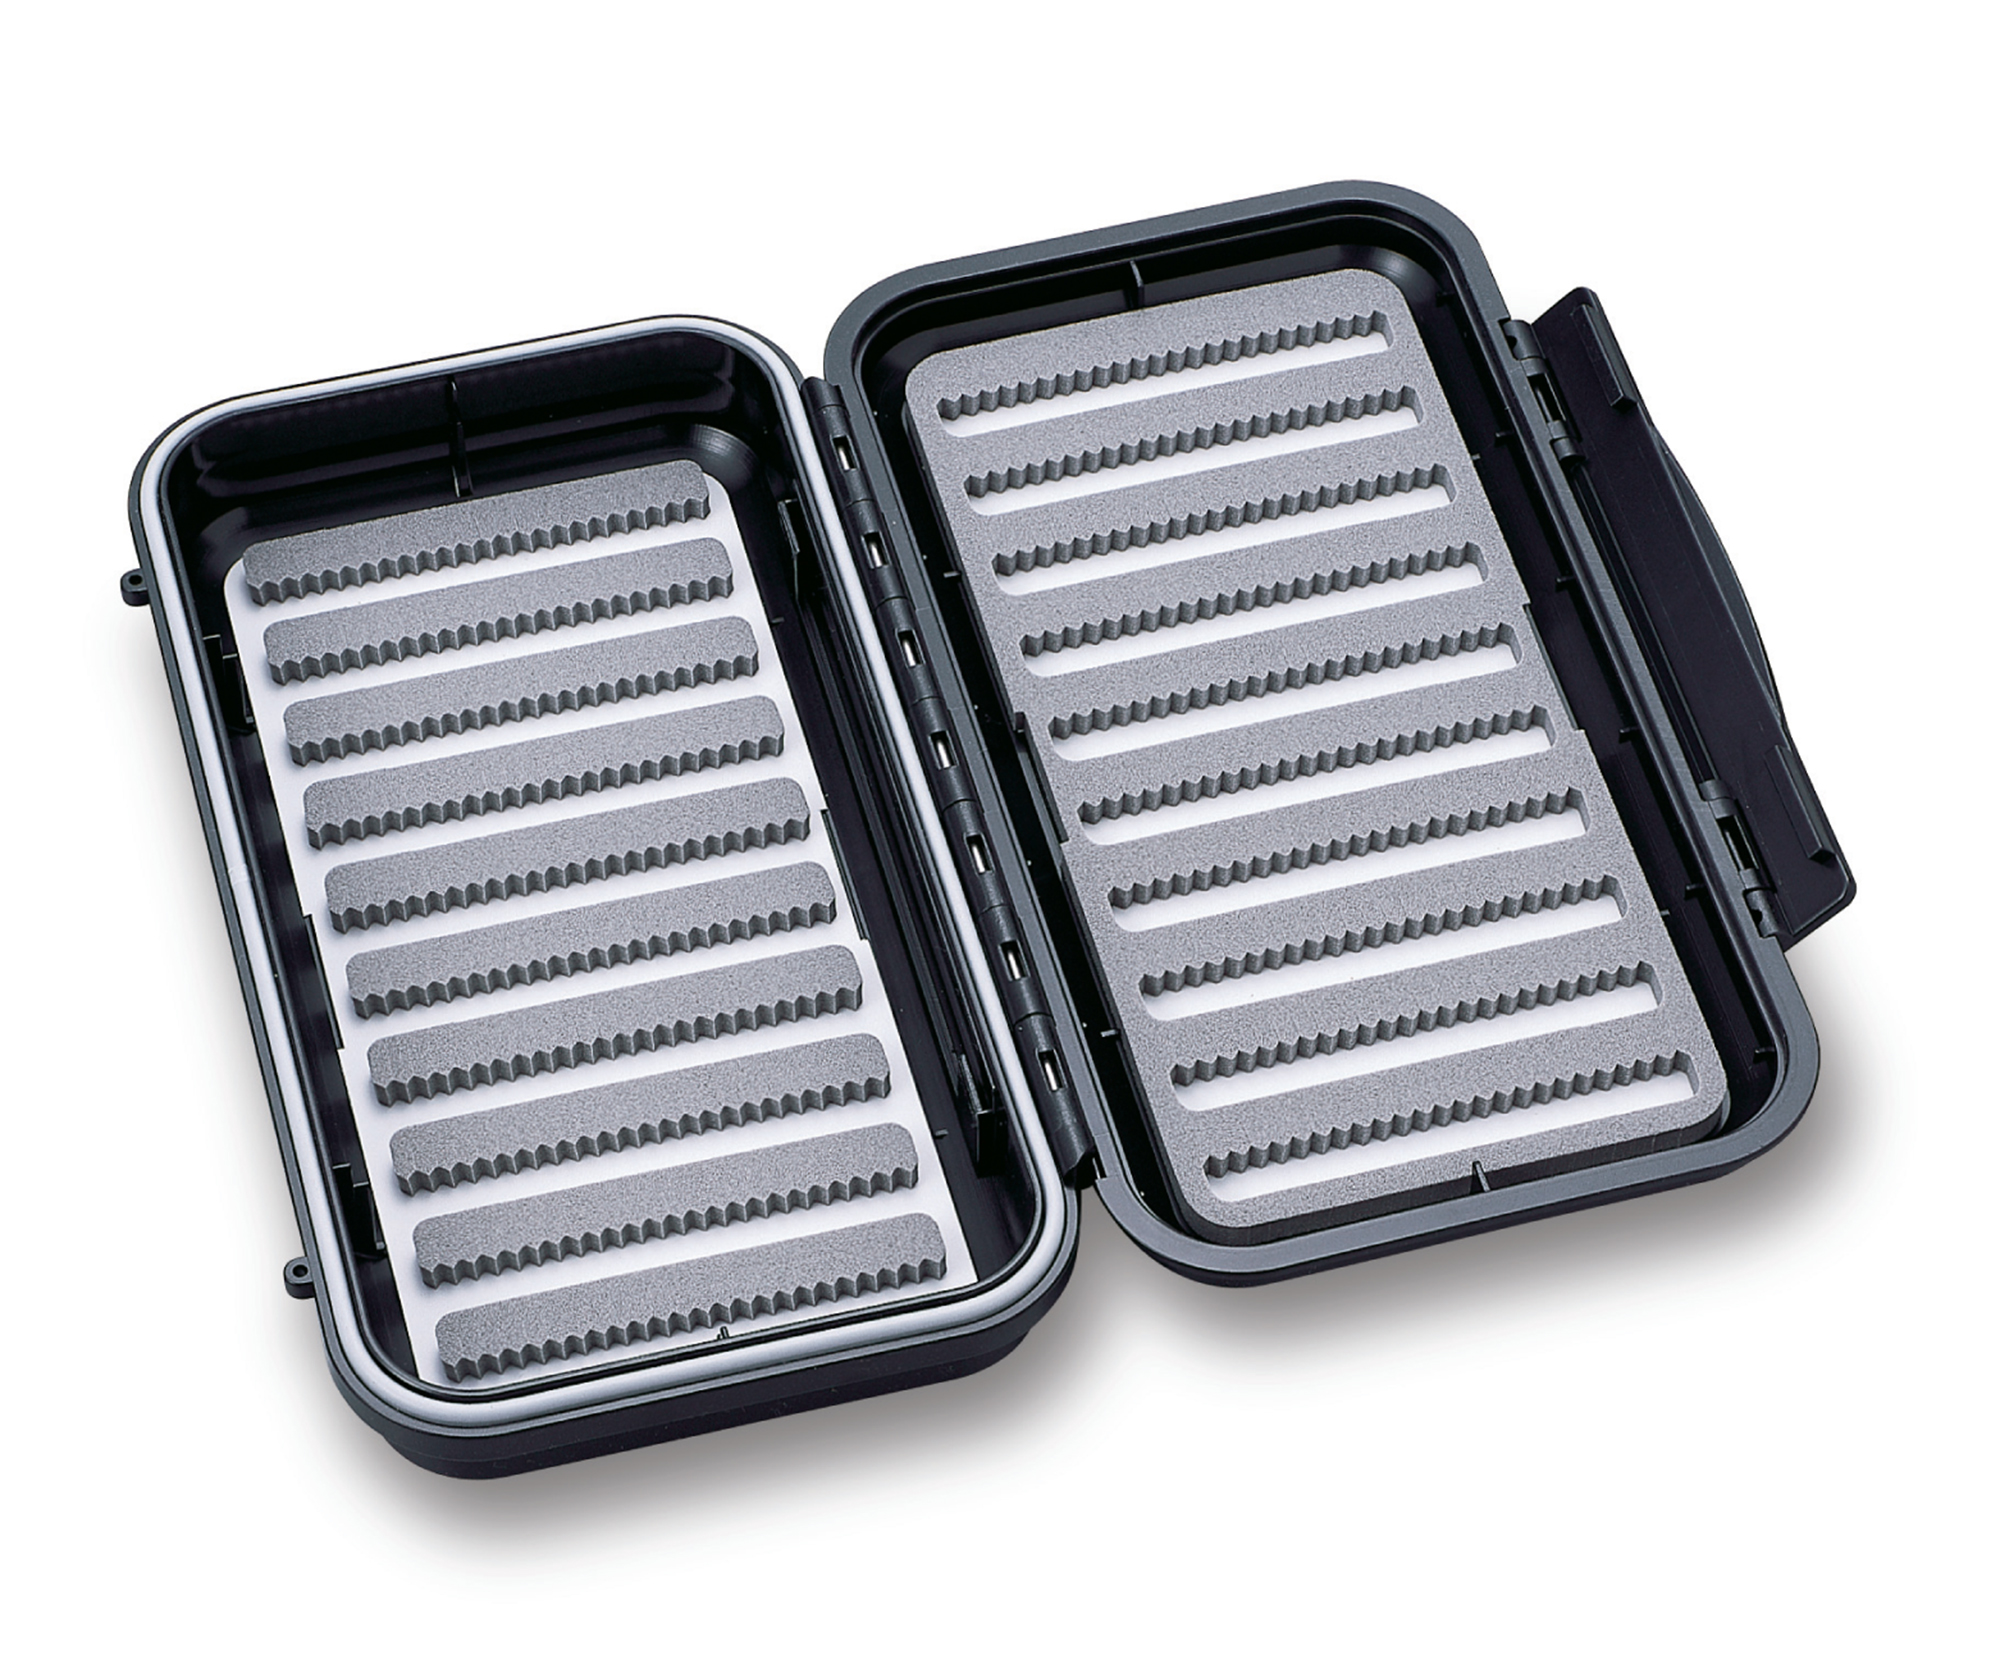 Large 20-Row Waterproof Fly Box